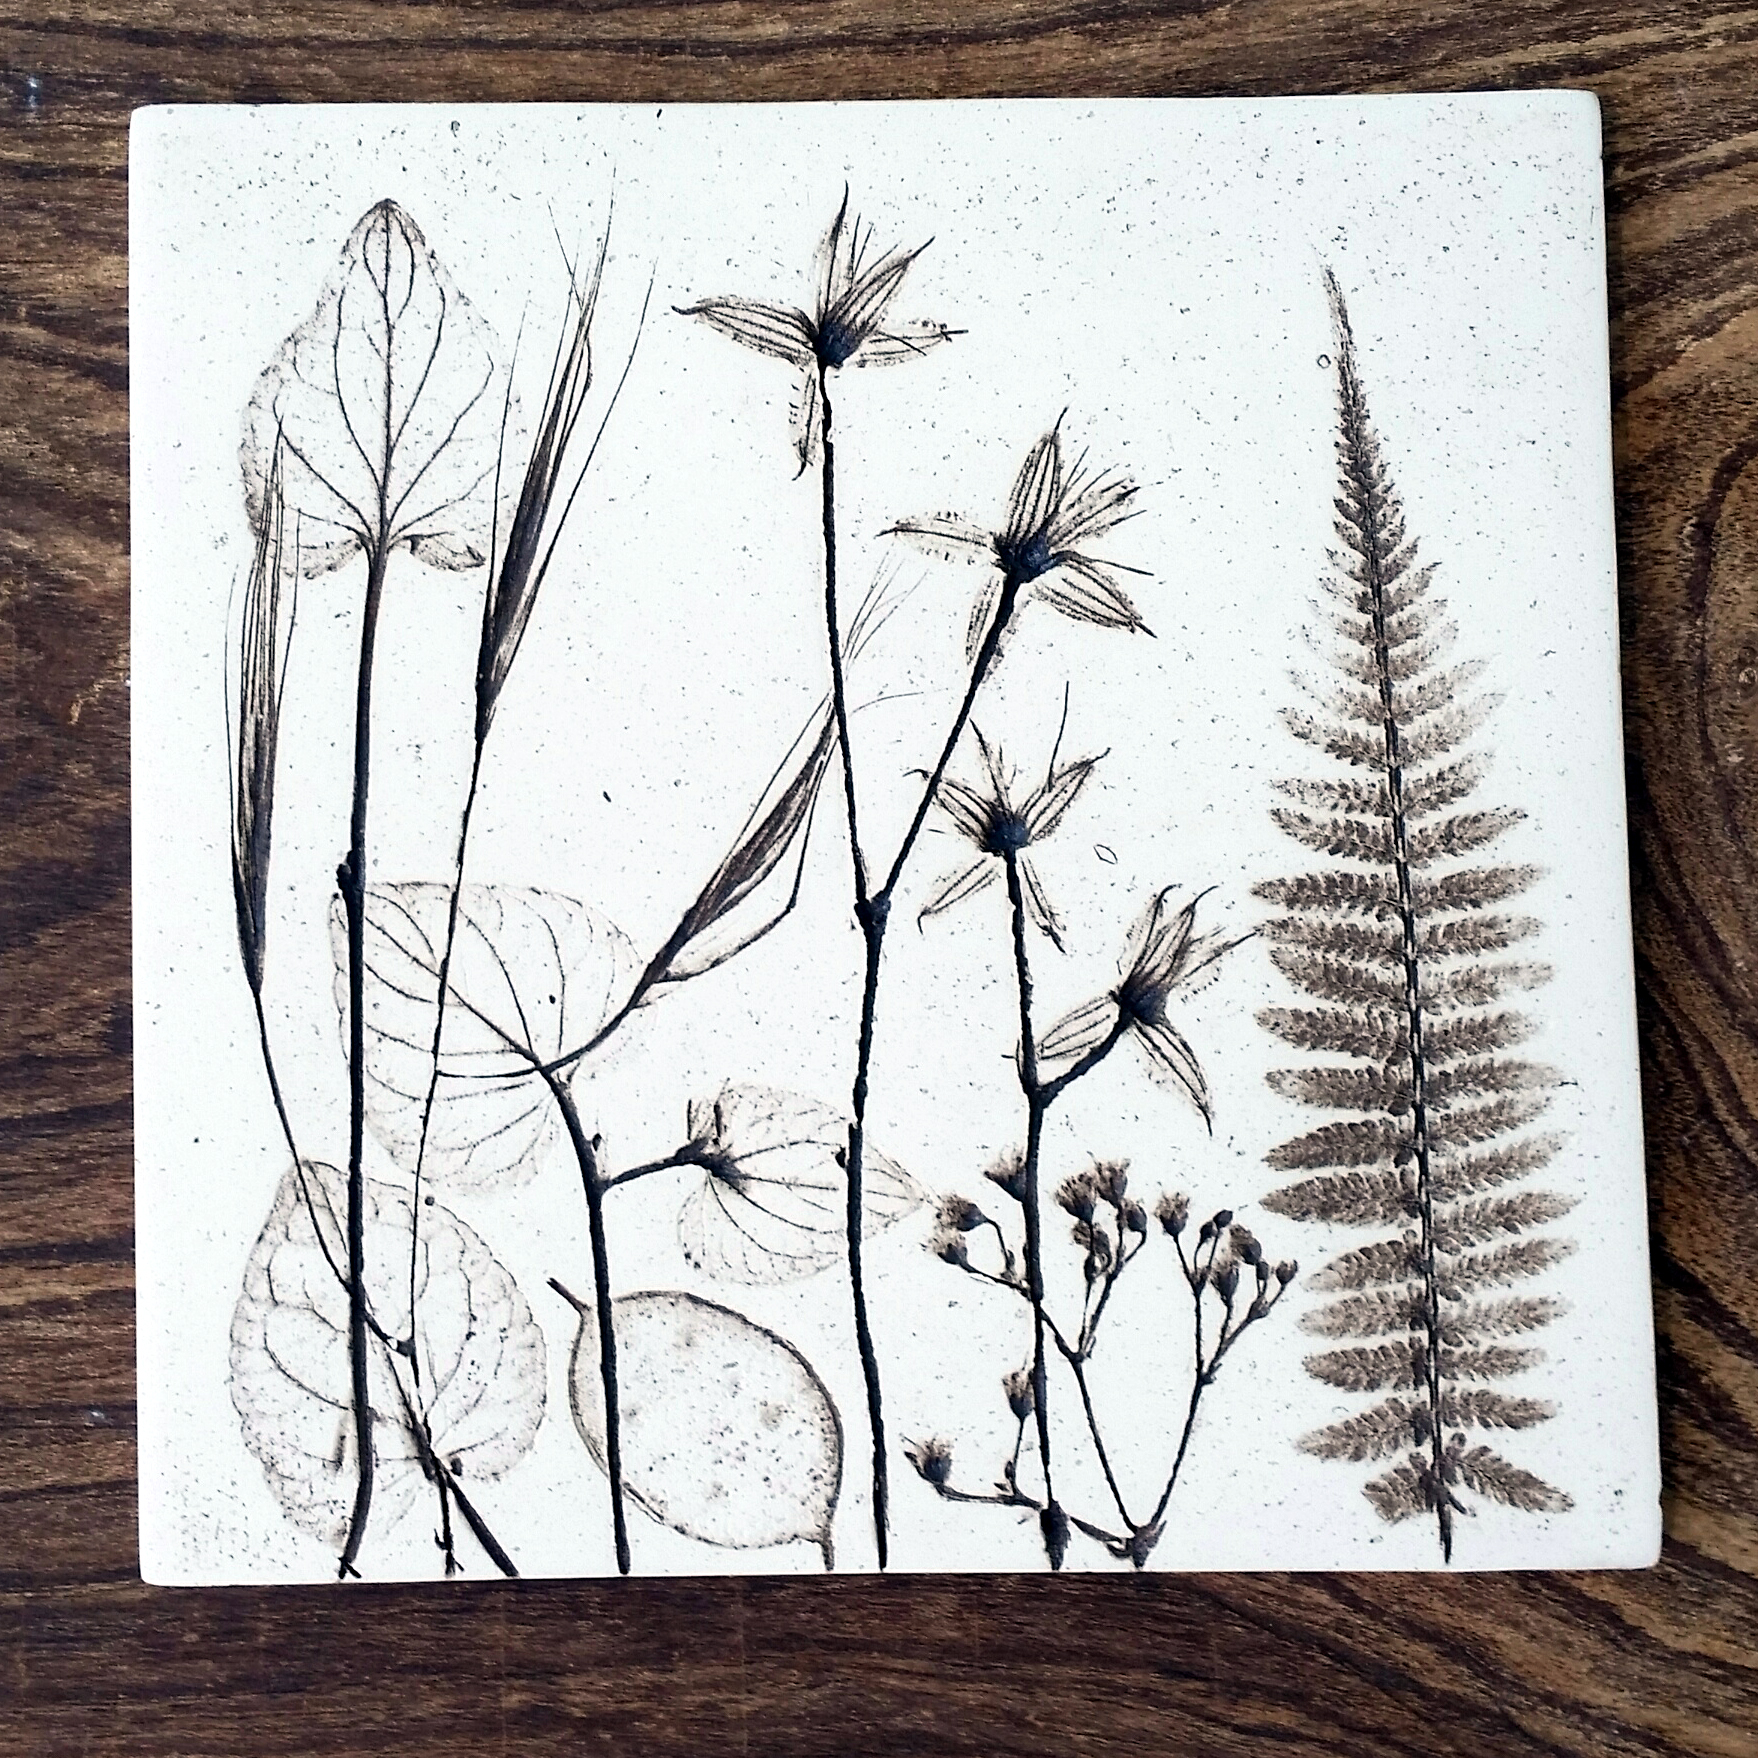 15 cm square natural flora and fauna tile.